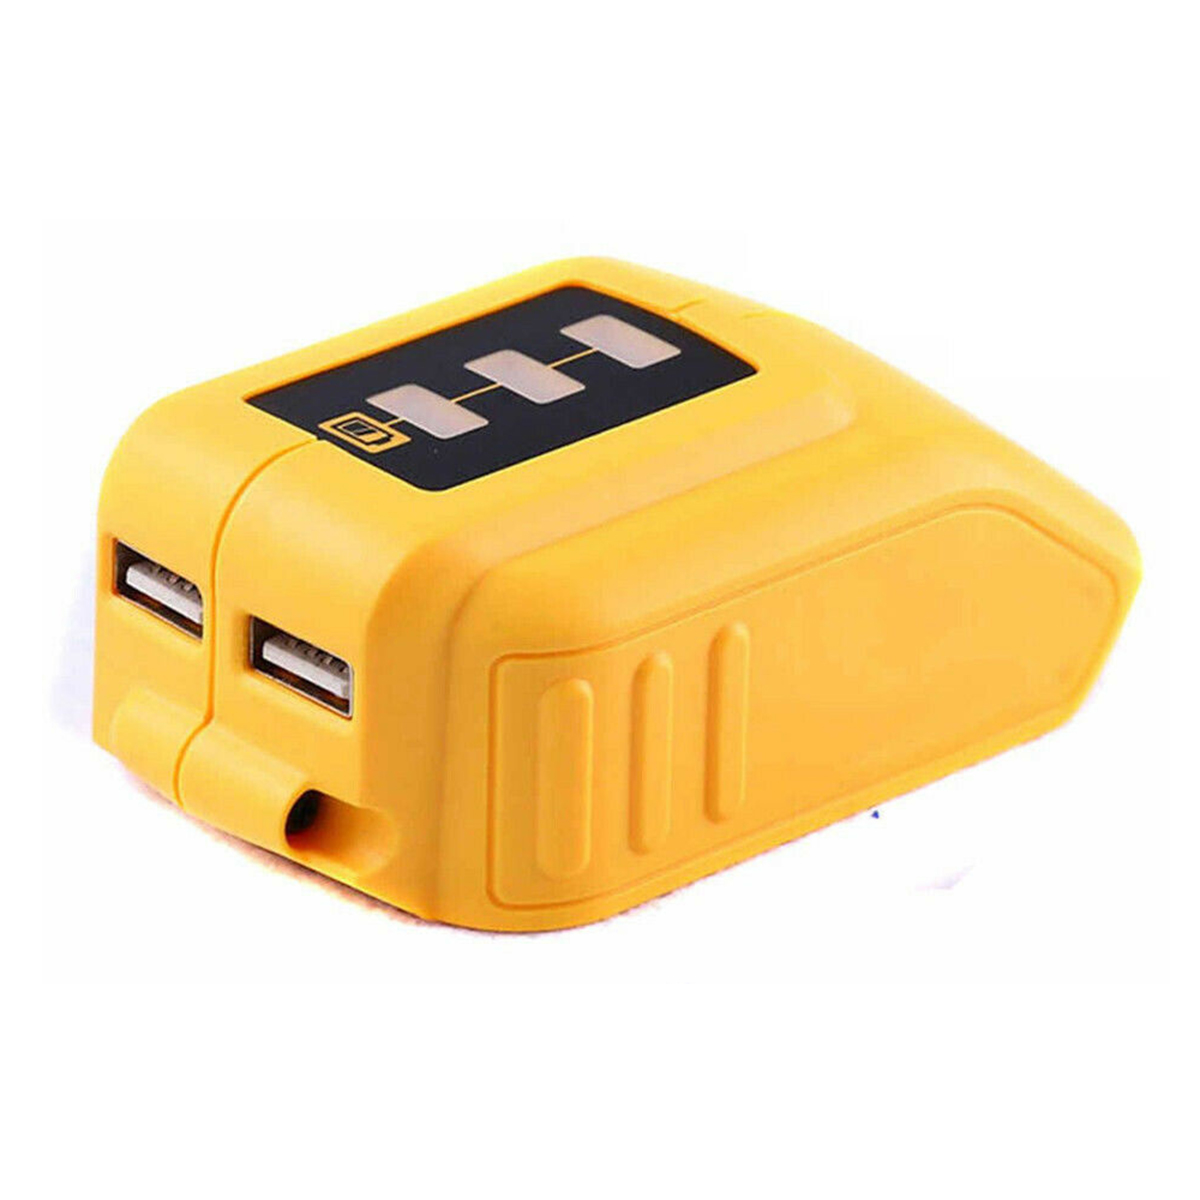 12V-18V Dual USB Port Battery Adapter Charger Built-In Smart Chip Li-Ion Battery Charger With Indicator For Dewalt <font><b>DCB090</b></font> image